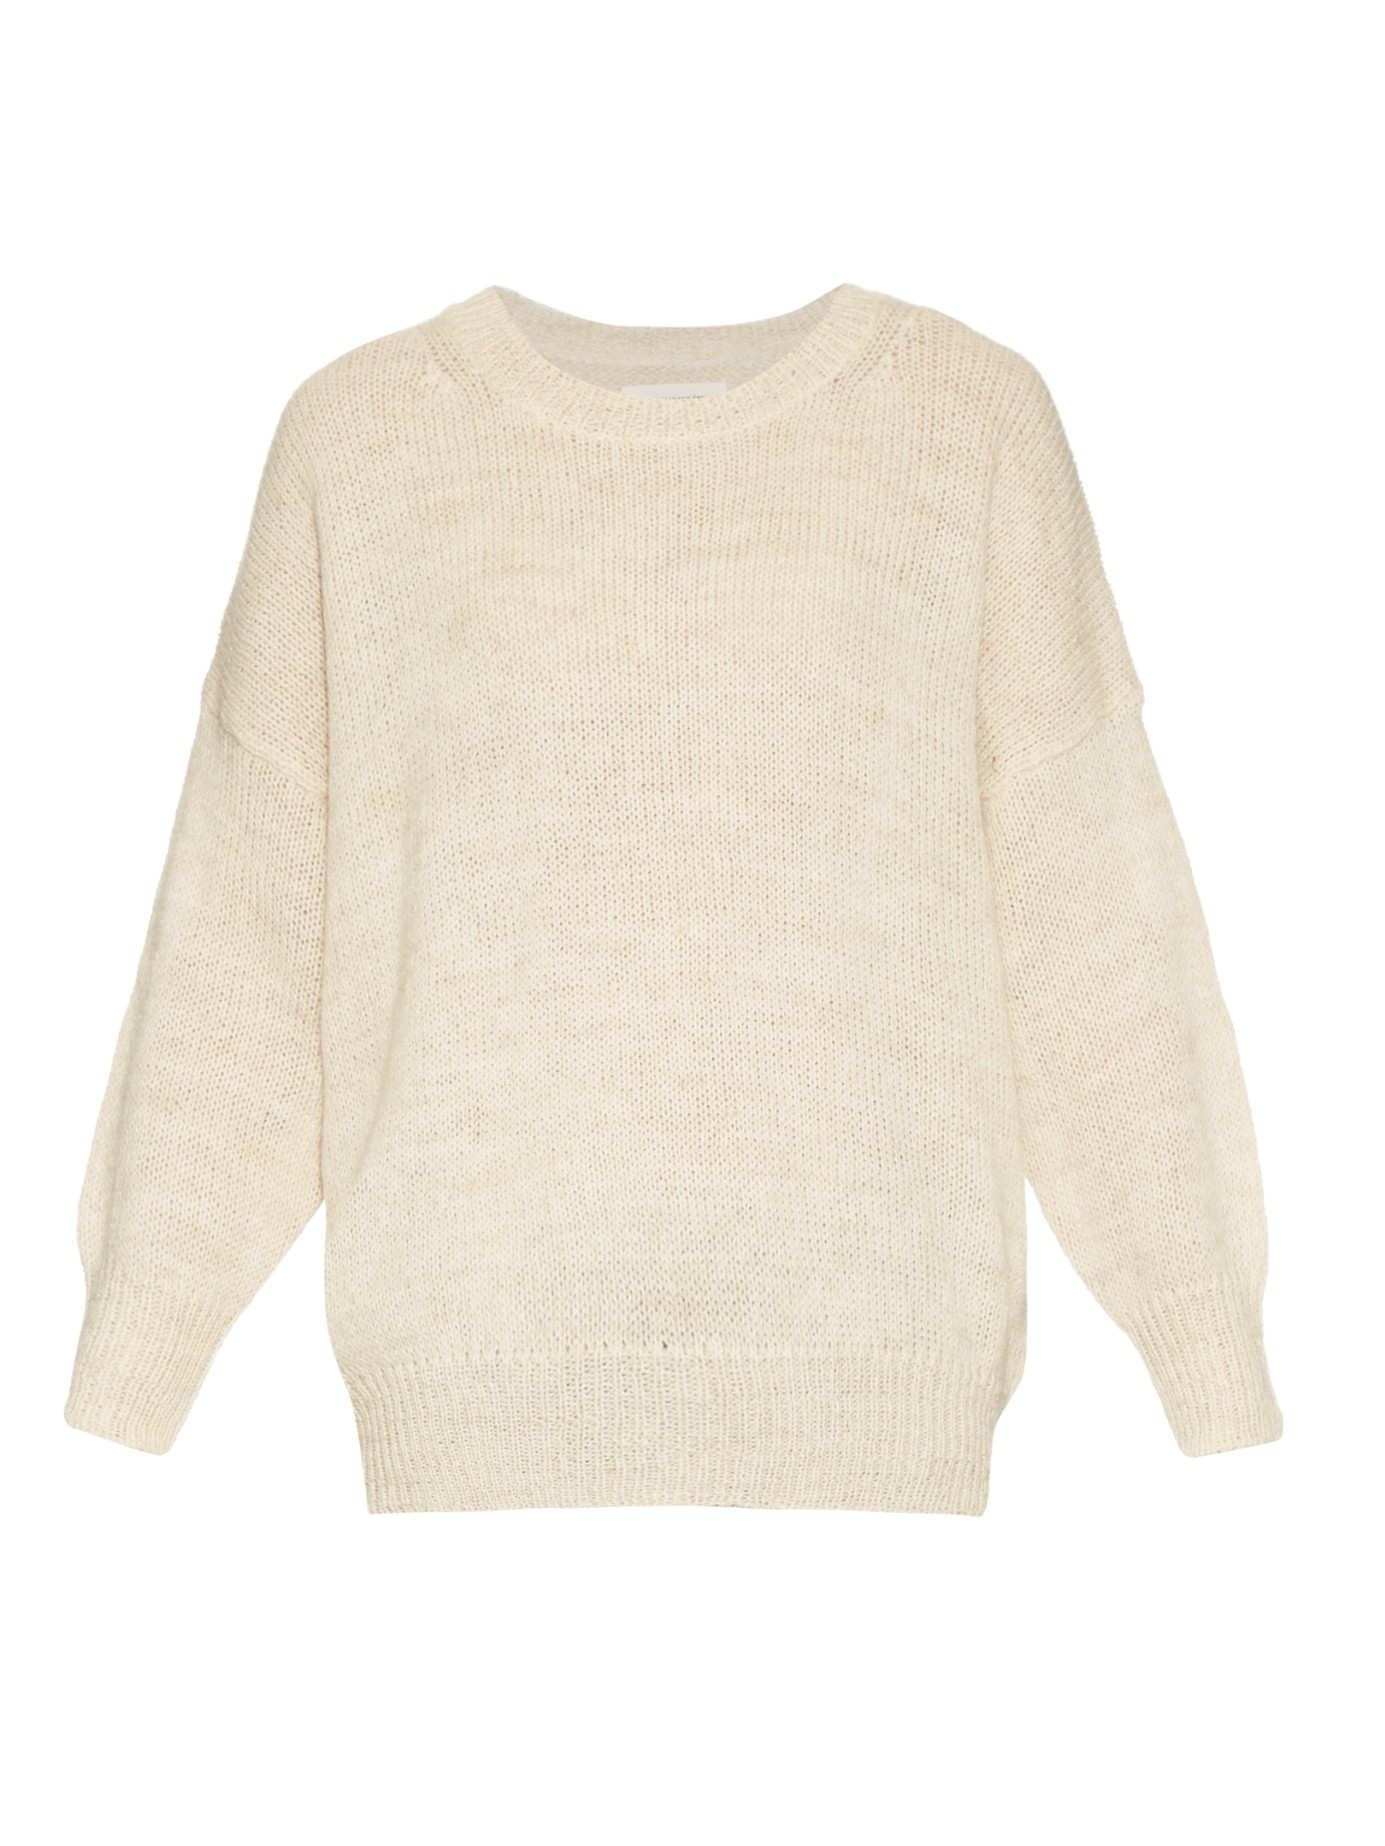 Étoile isabel marant Risha Loose-knit Sweater in Natural | Lyst